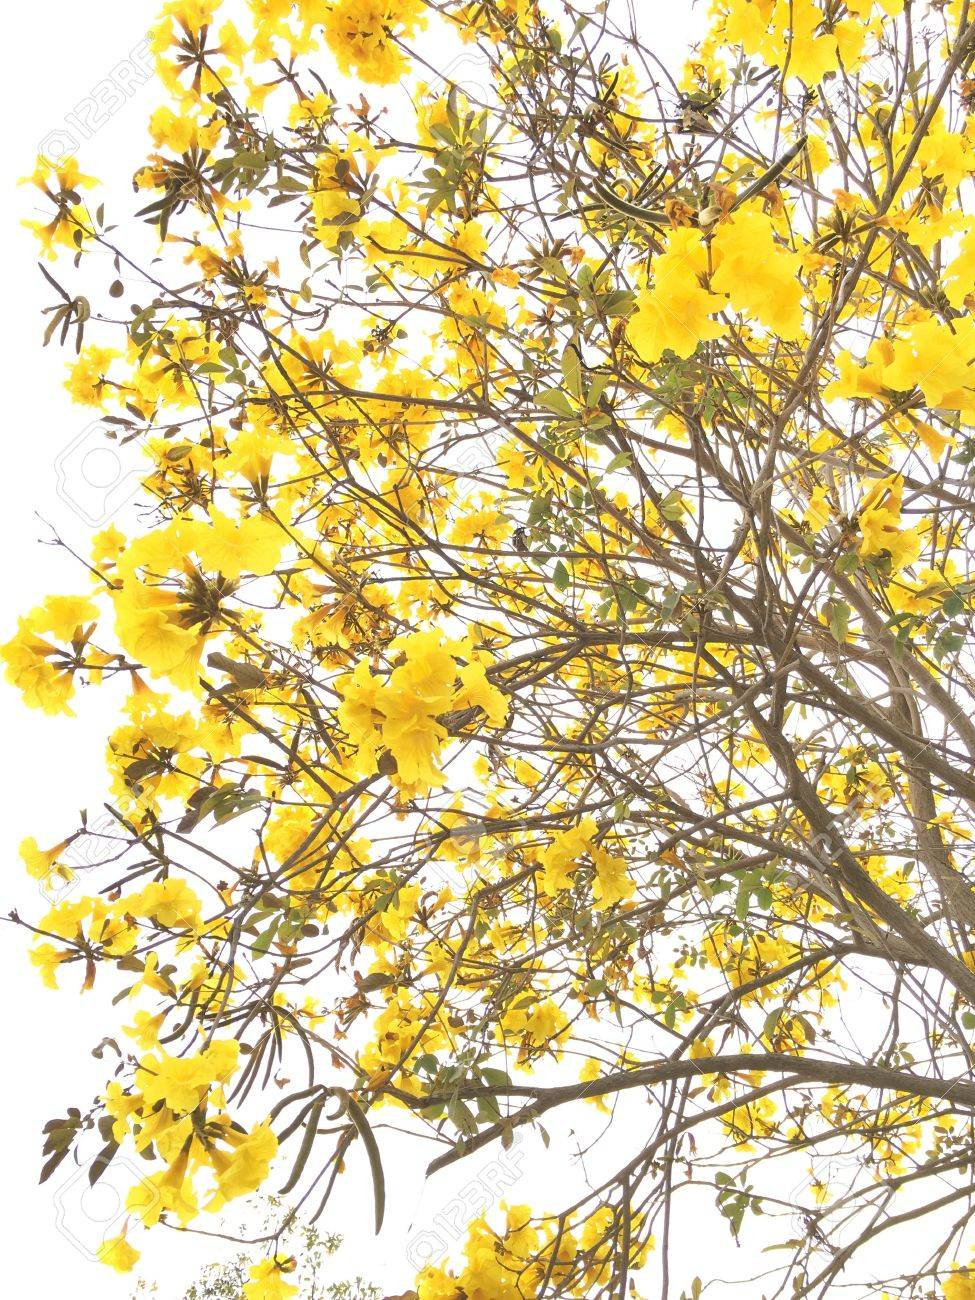 Yellow India Tree With Yellow Flowers Stock Photo Picture And Royalty Free Image Image 57820128